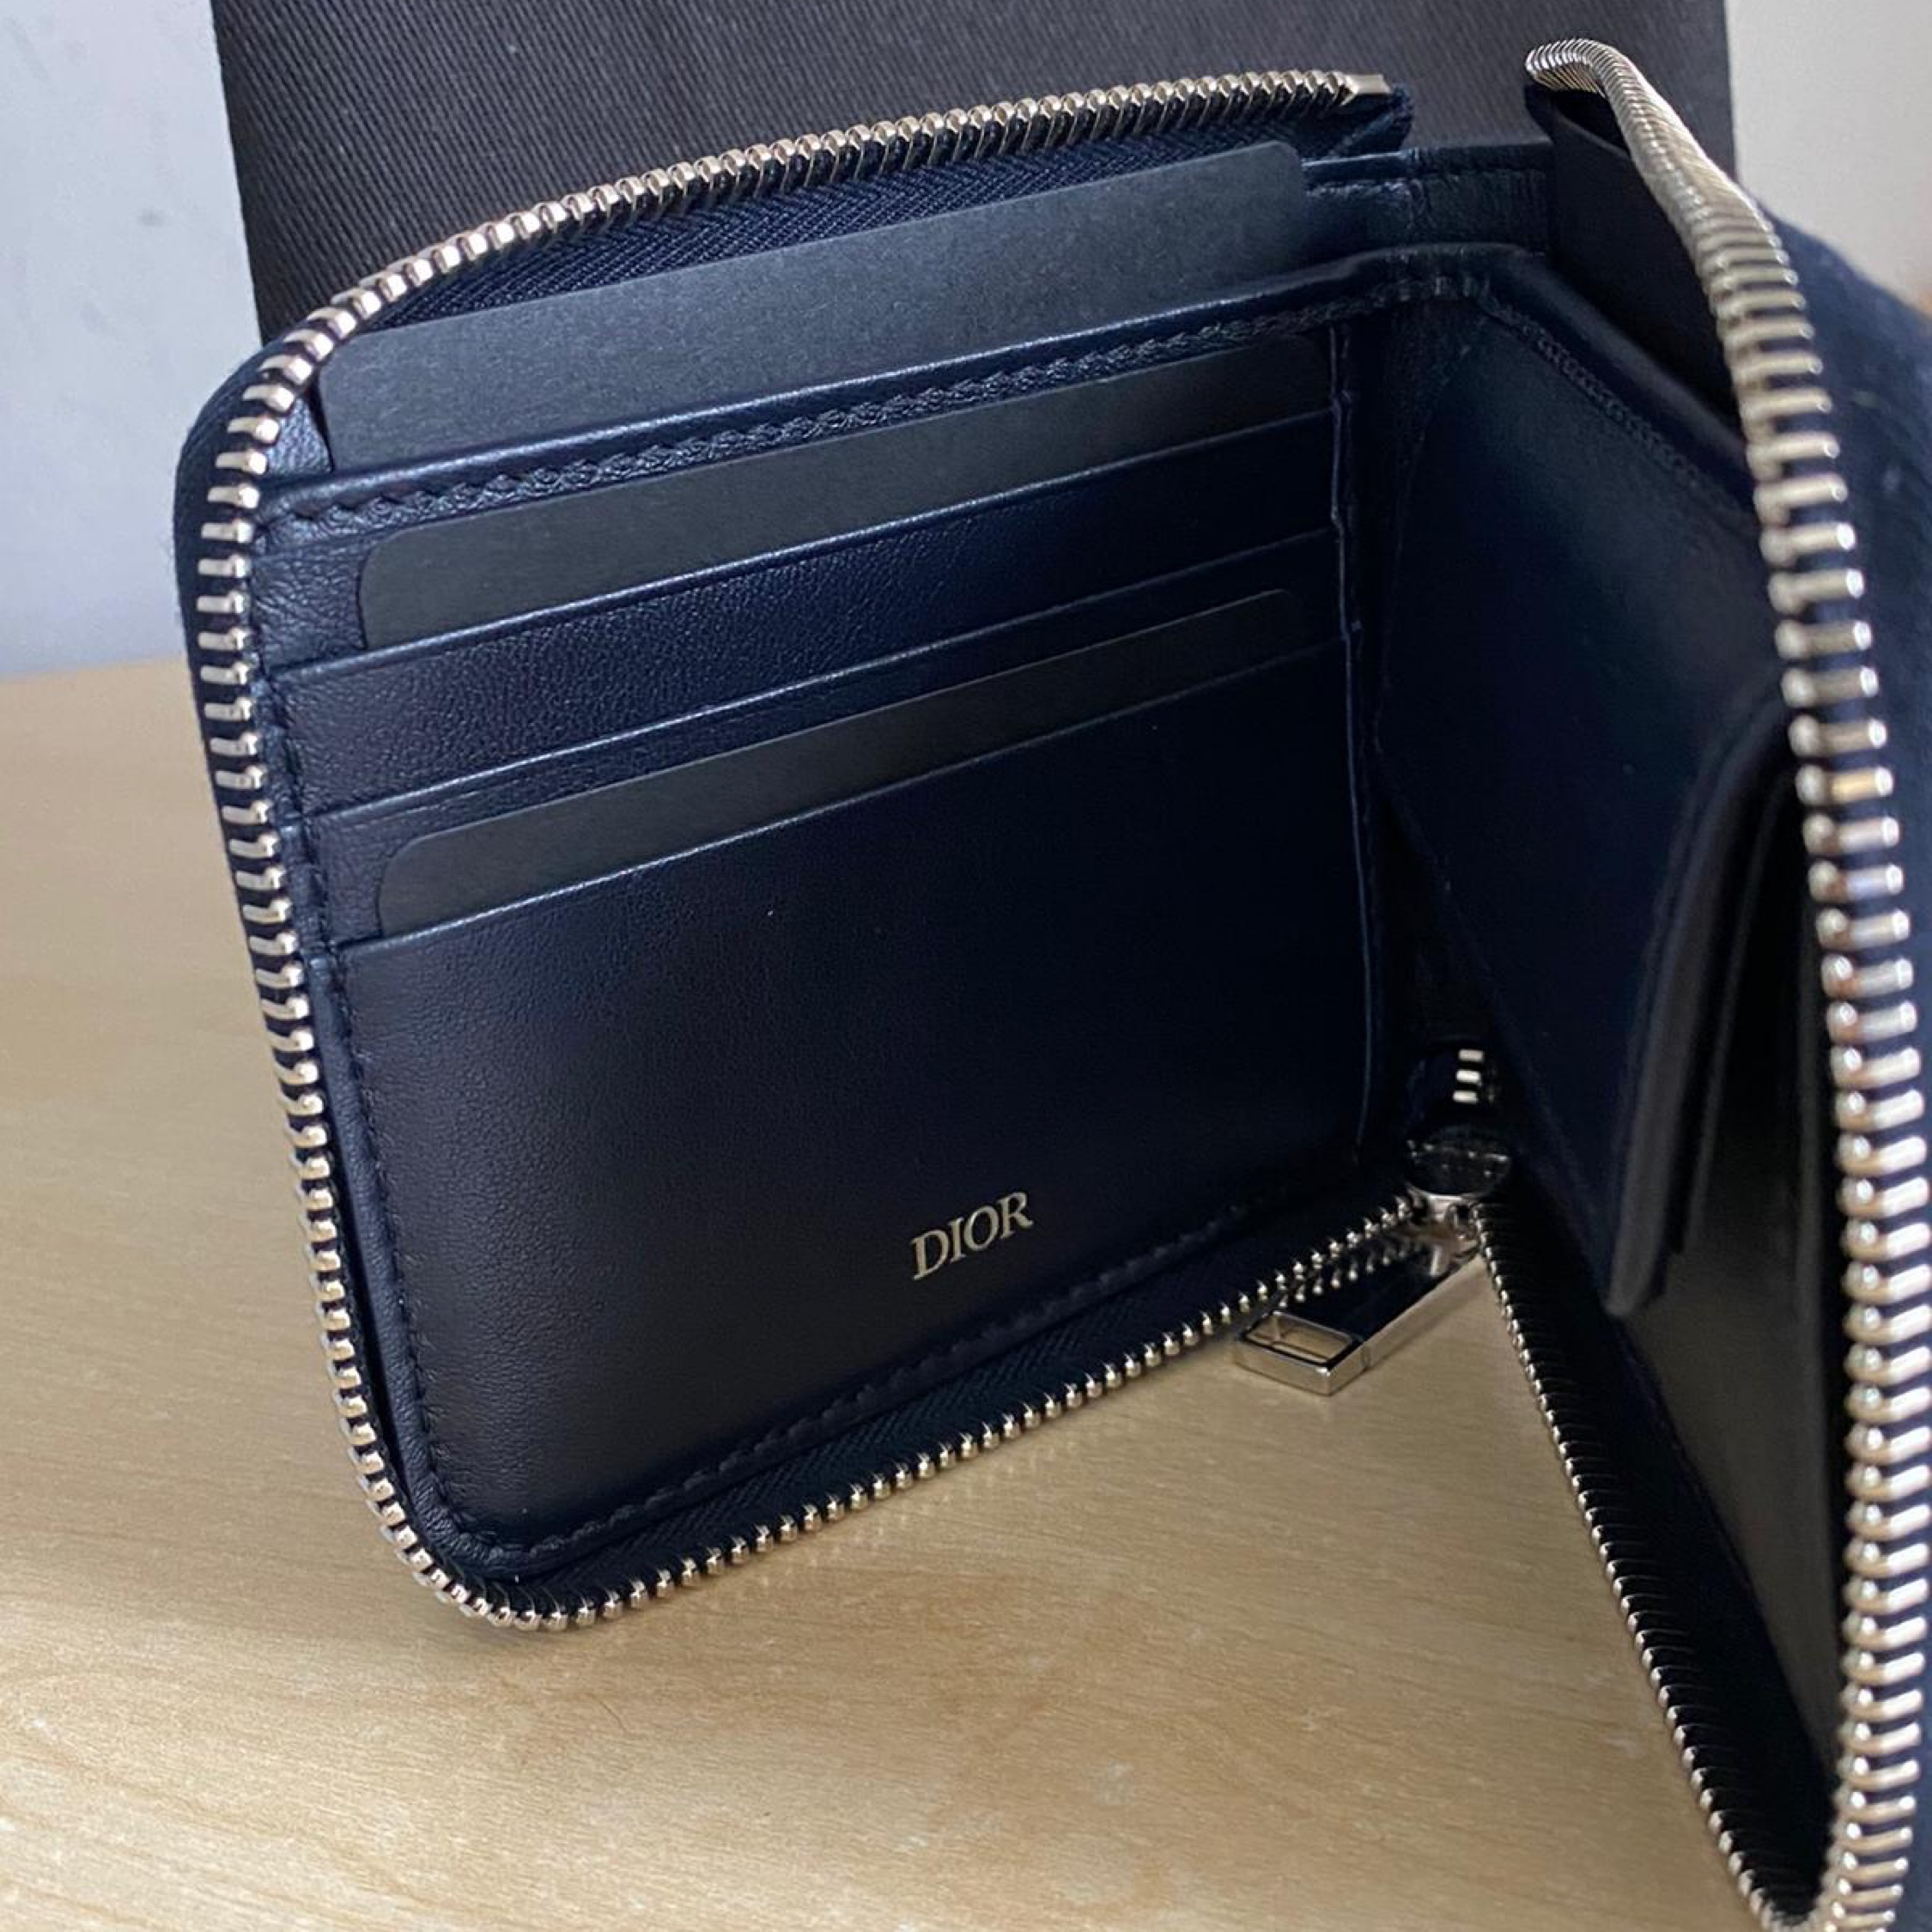 Dior X Jordan Zipped Compact Wallet Blue Navy